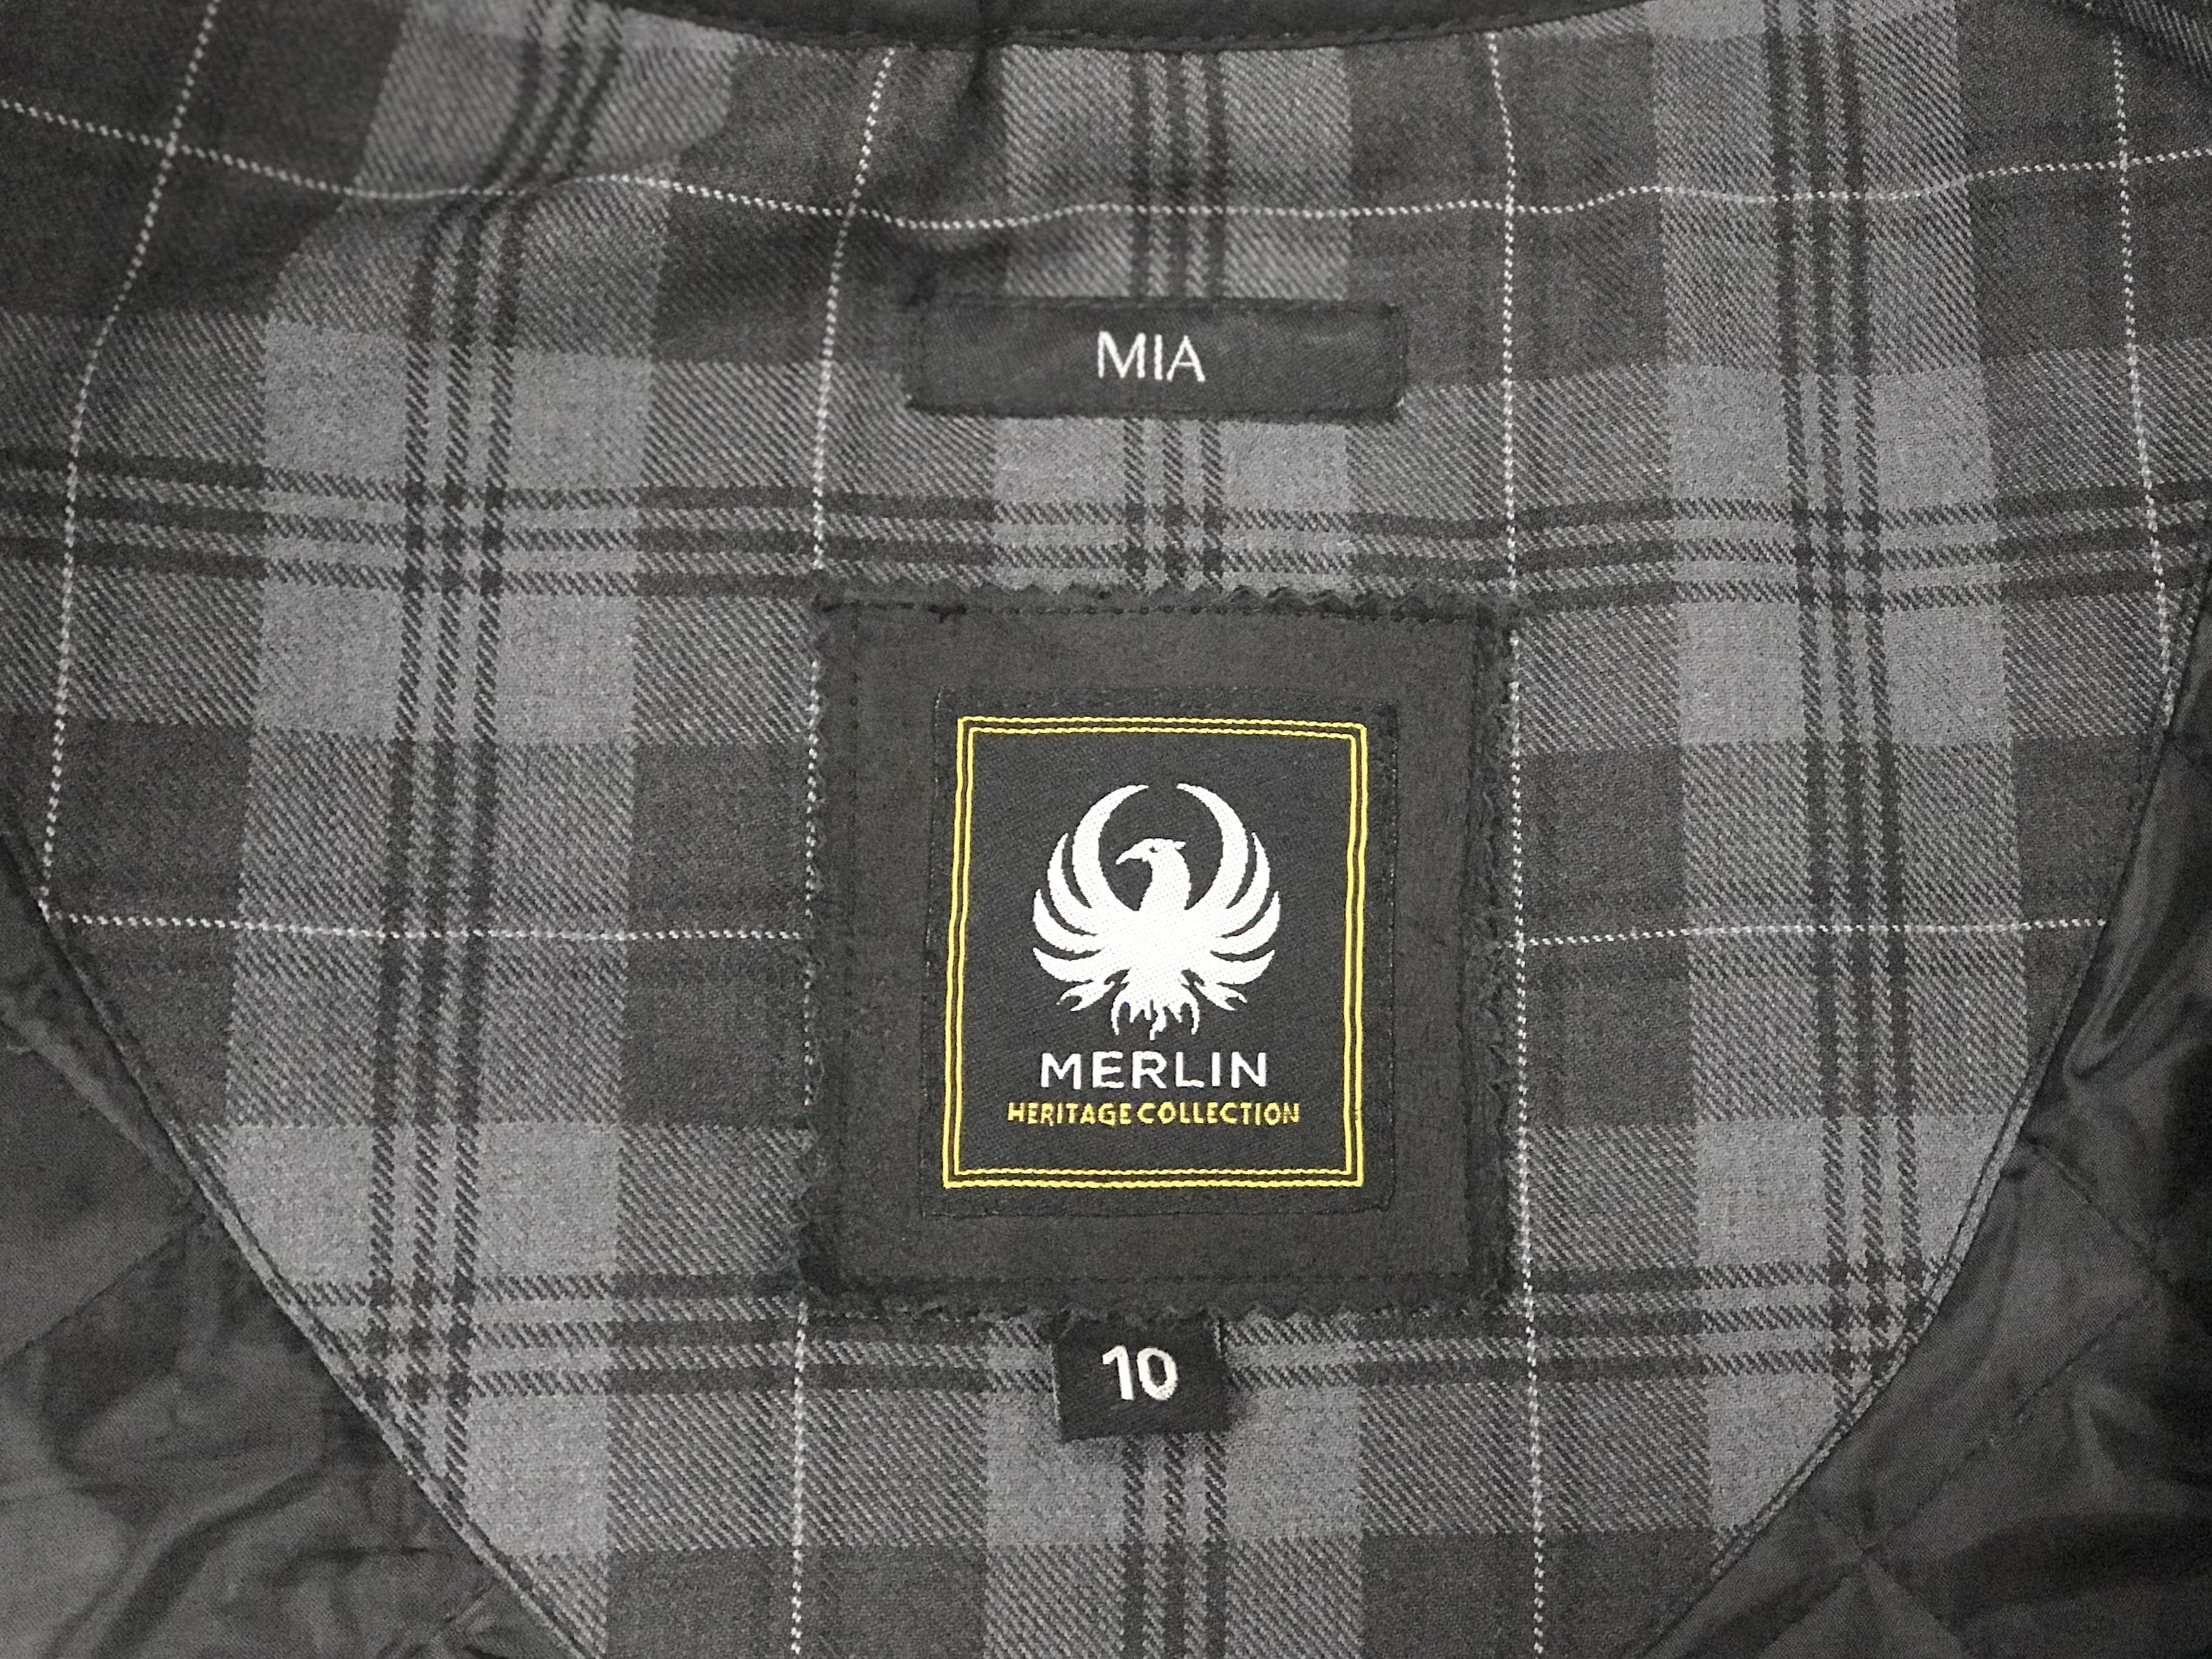 The inside with logo and size of a Merlin Mia jacket